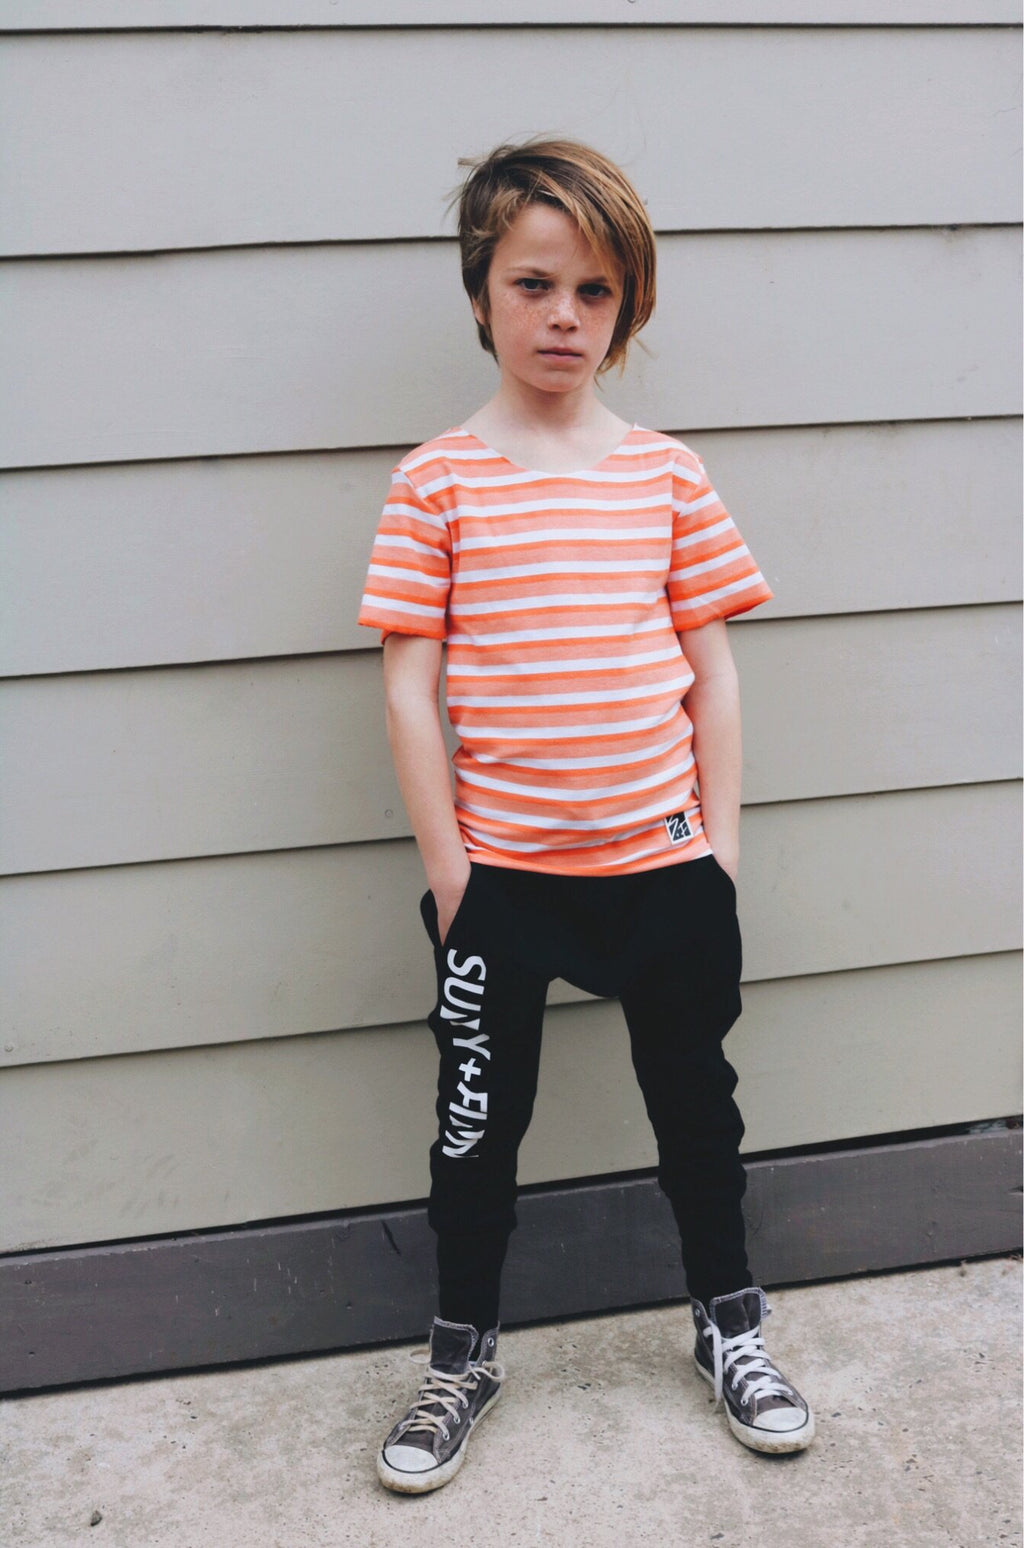 Basic Tee Stripes Orange White Tees + Tanks sunny+finn australia kids